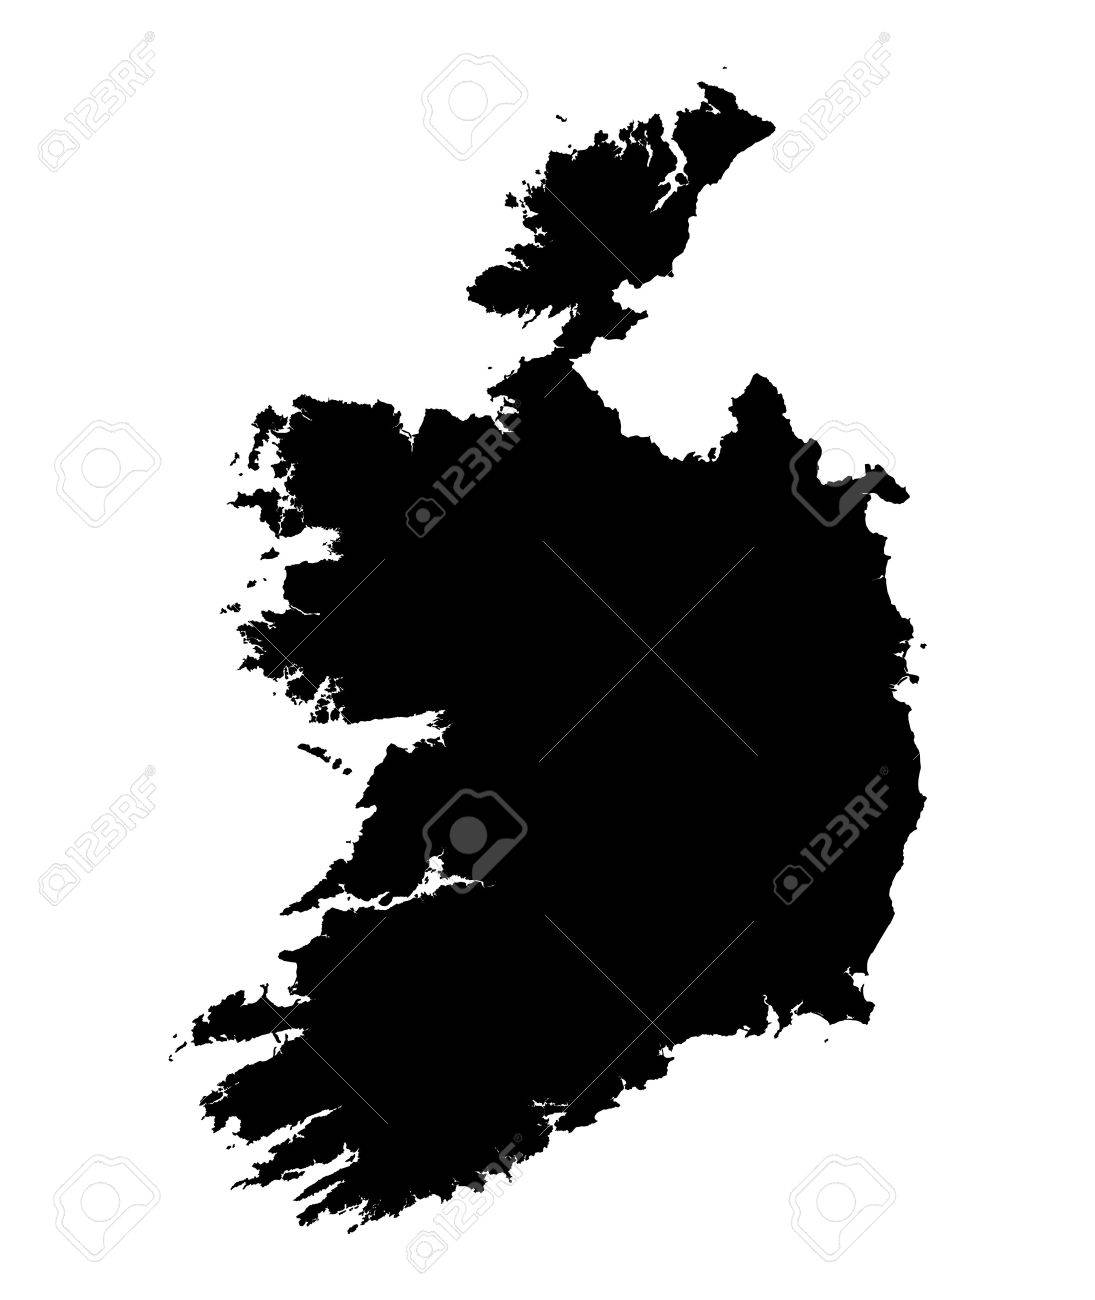 Map Of Ireland Black And White.Detailed Isolated Map Of Ireland Black And White Mercator